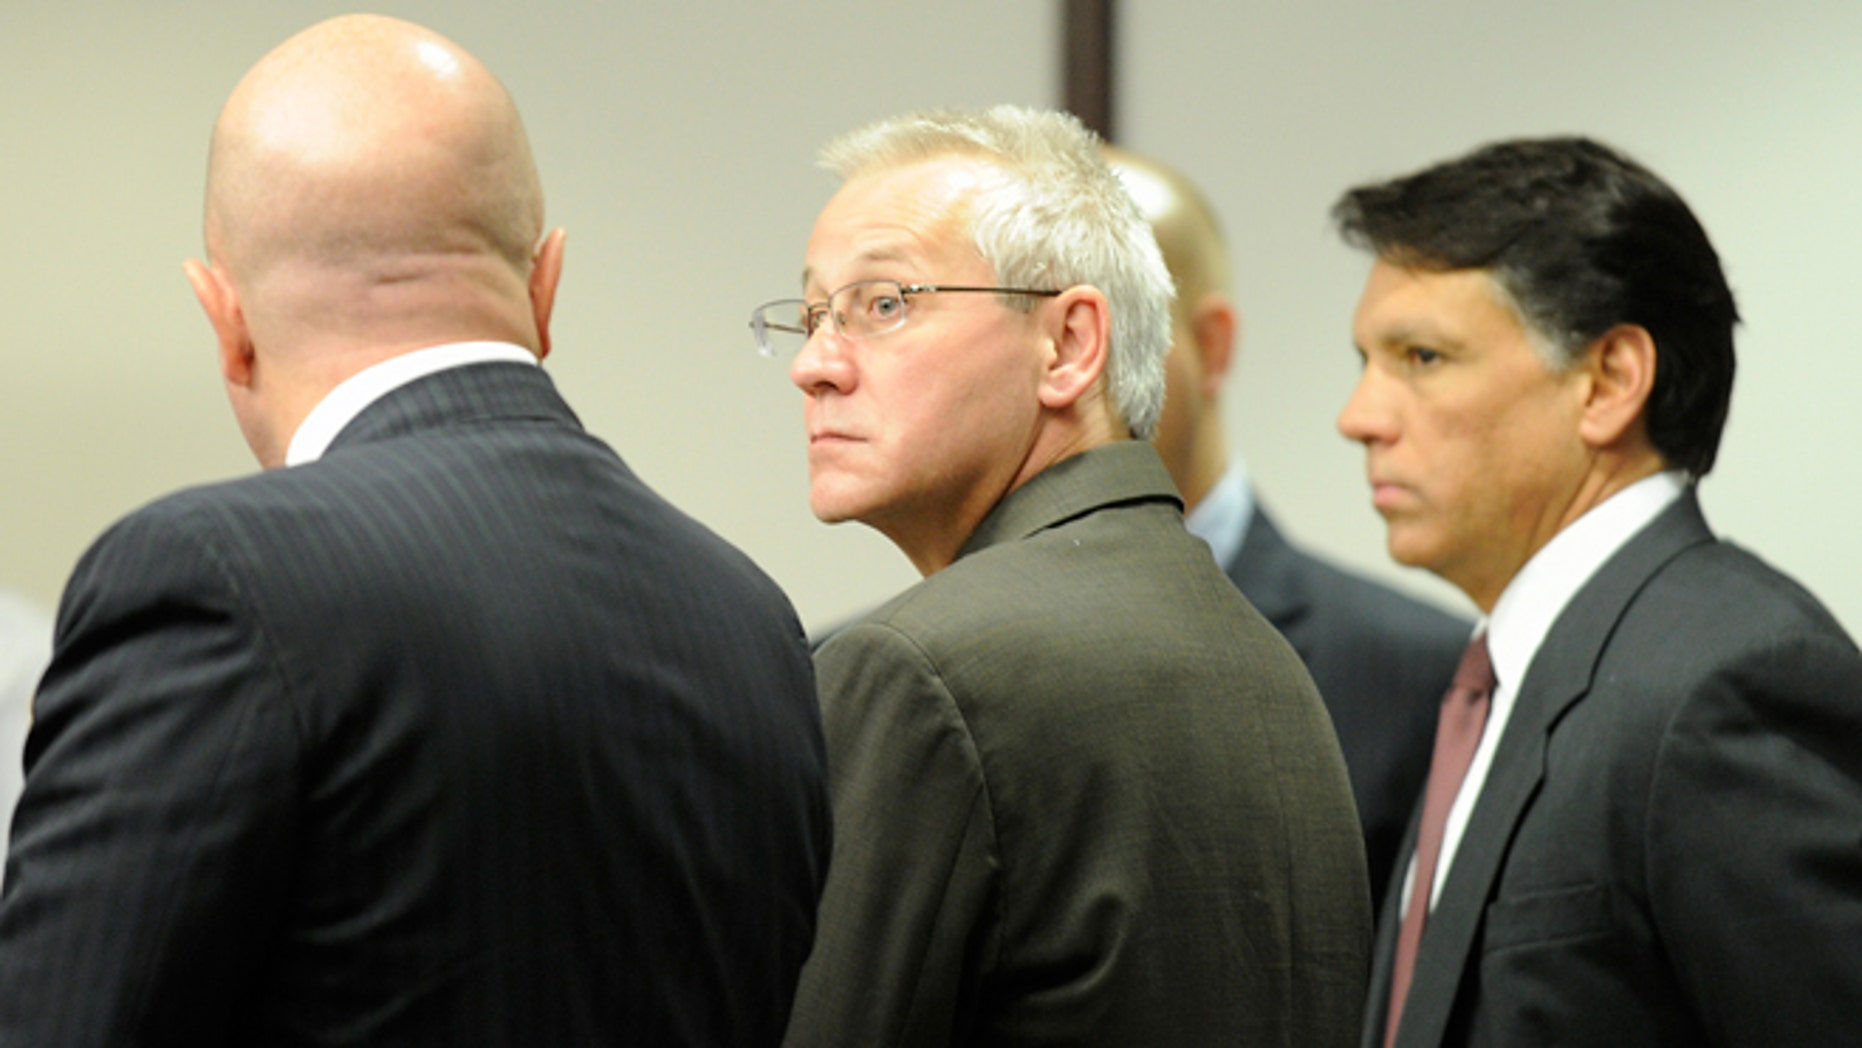 Oscar Ray Bolin Jr. watches as the jurors walk into the courtroom on April 19, 2012, in Tampa.